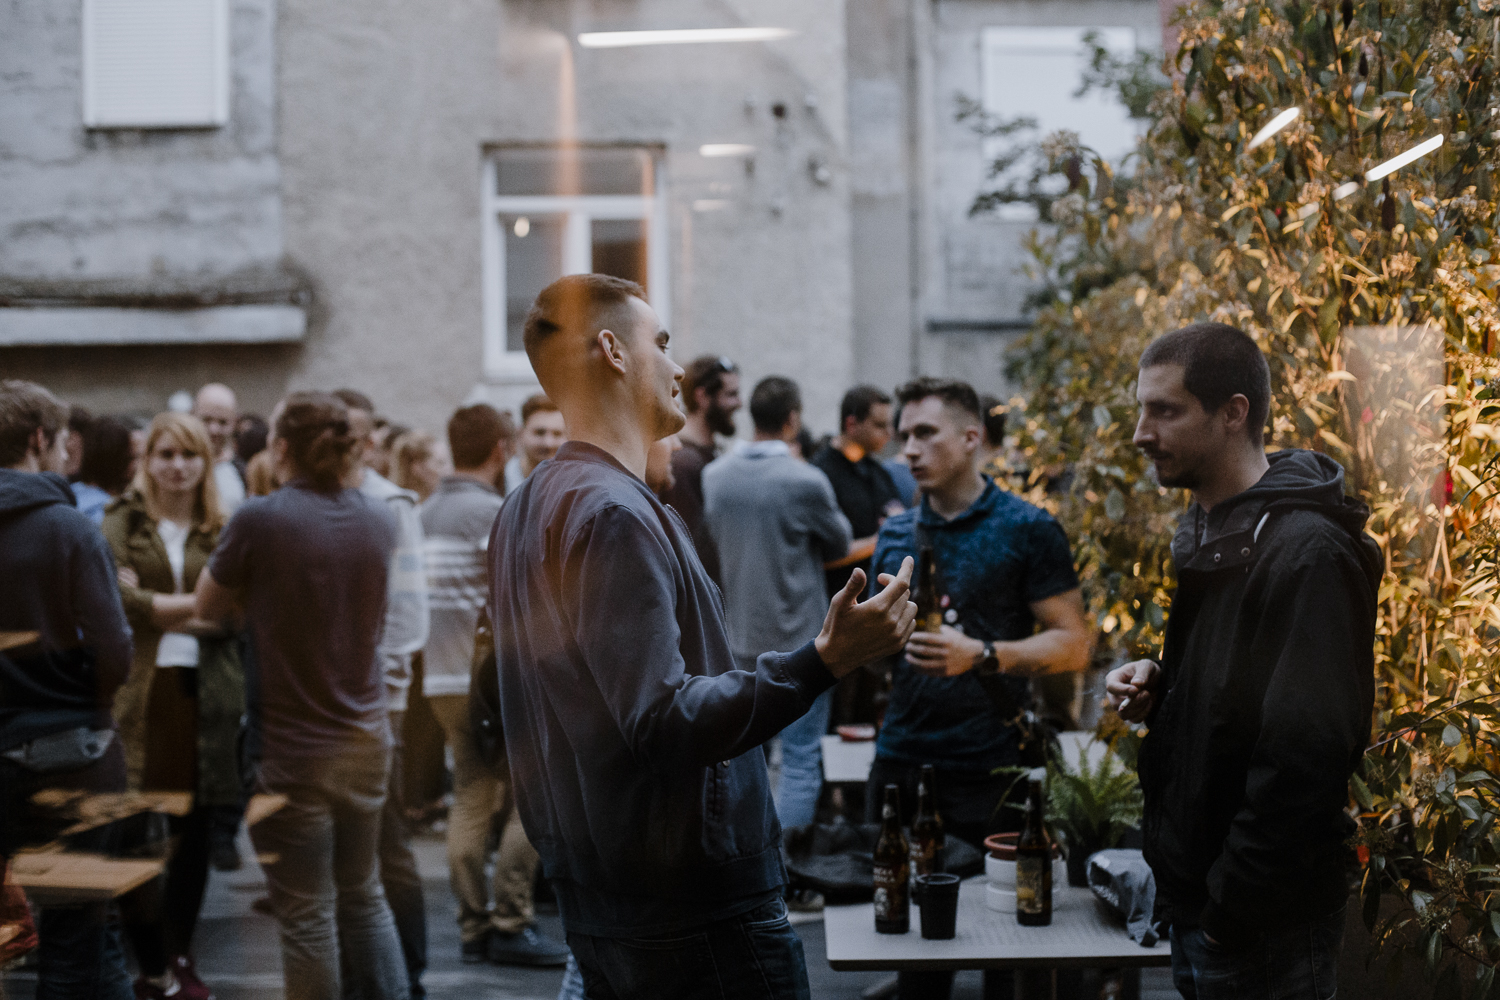 MEET UP - Q - Q software, 28.05.2019.